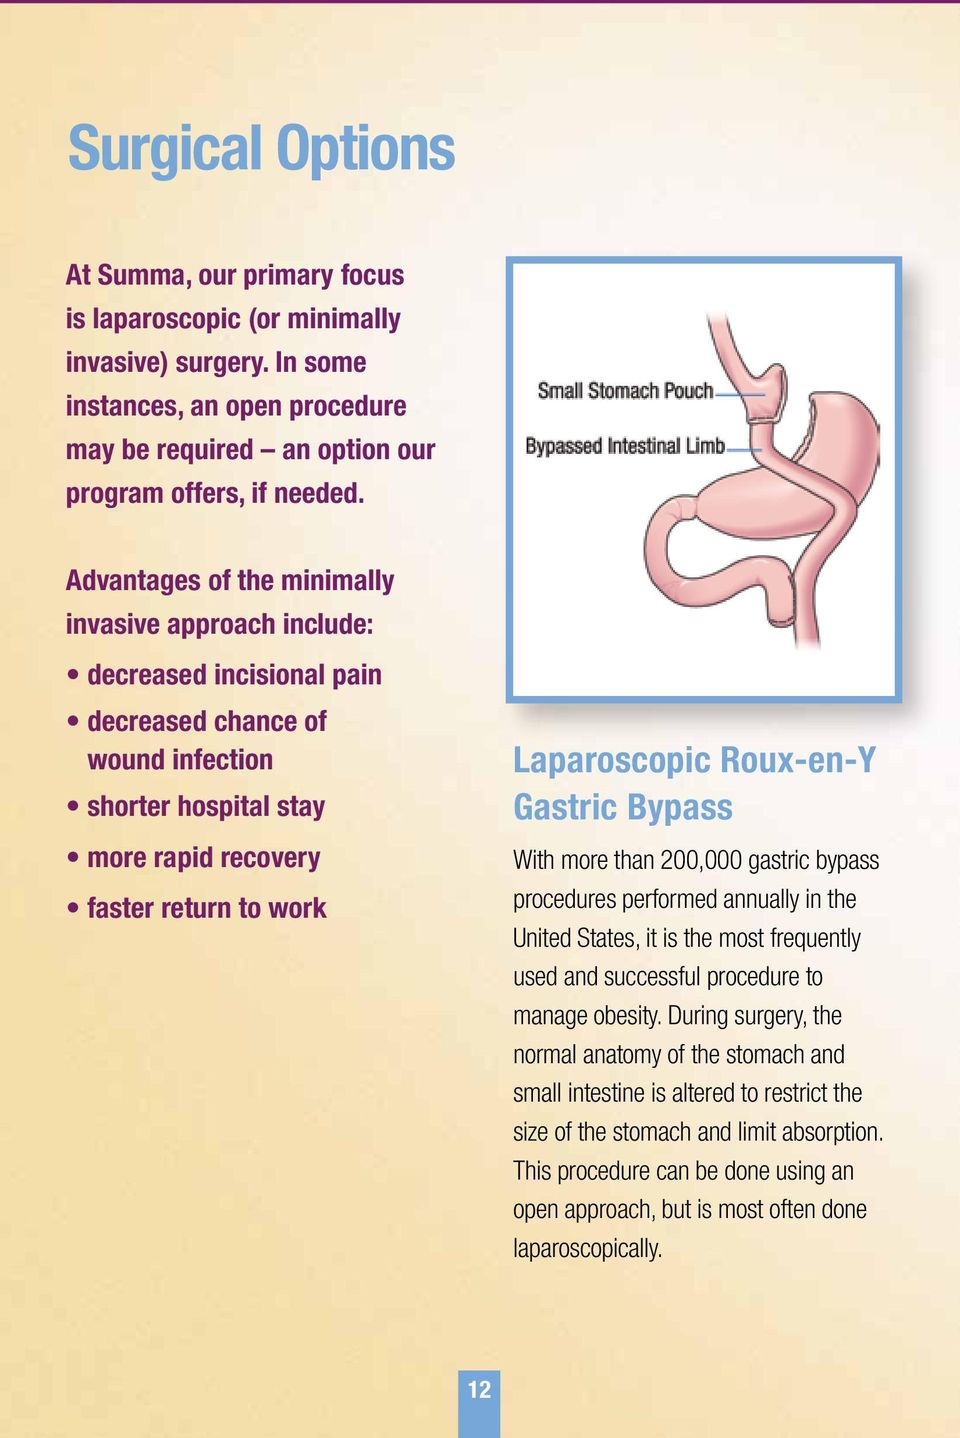 Roux-en-Y Gastric Bypass With more than 200,000 gastric bypass procedures performed annually in the United States, it is the most frequently used and successful procedure to manage obesity.